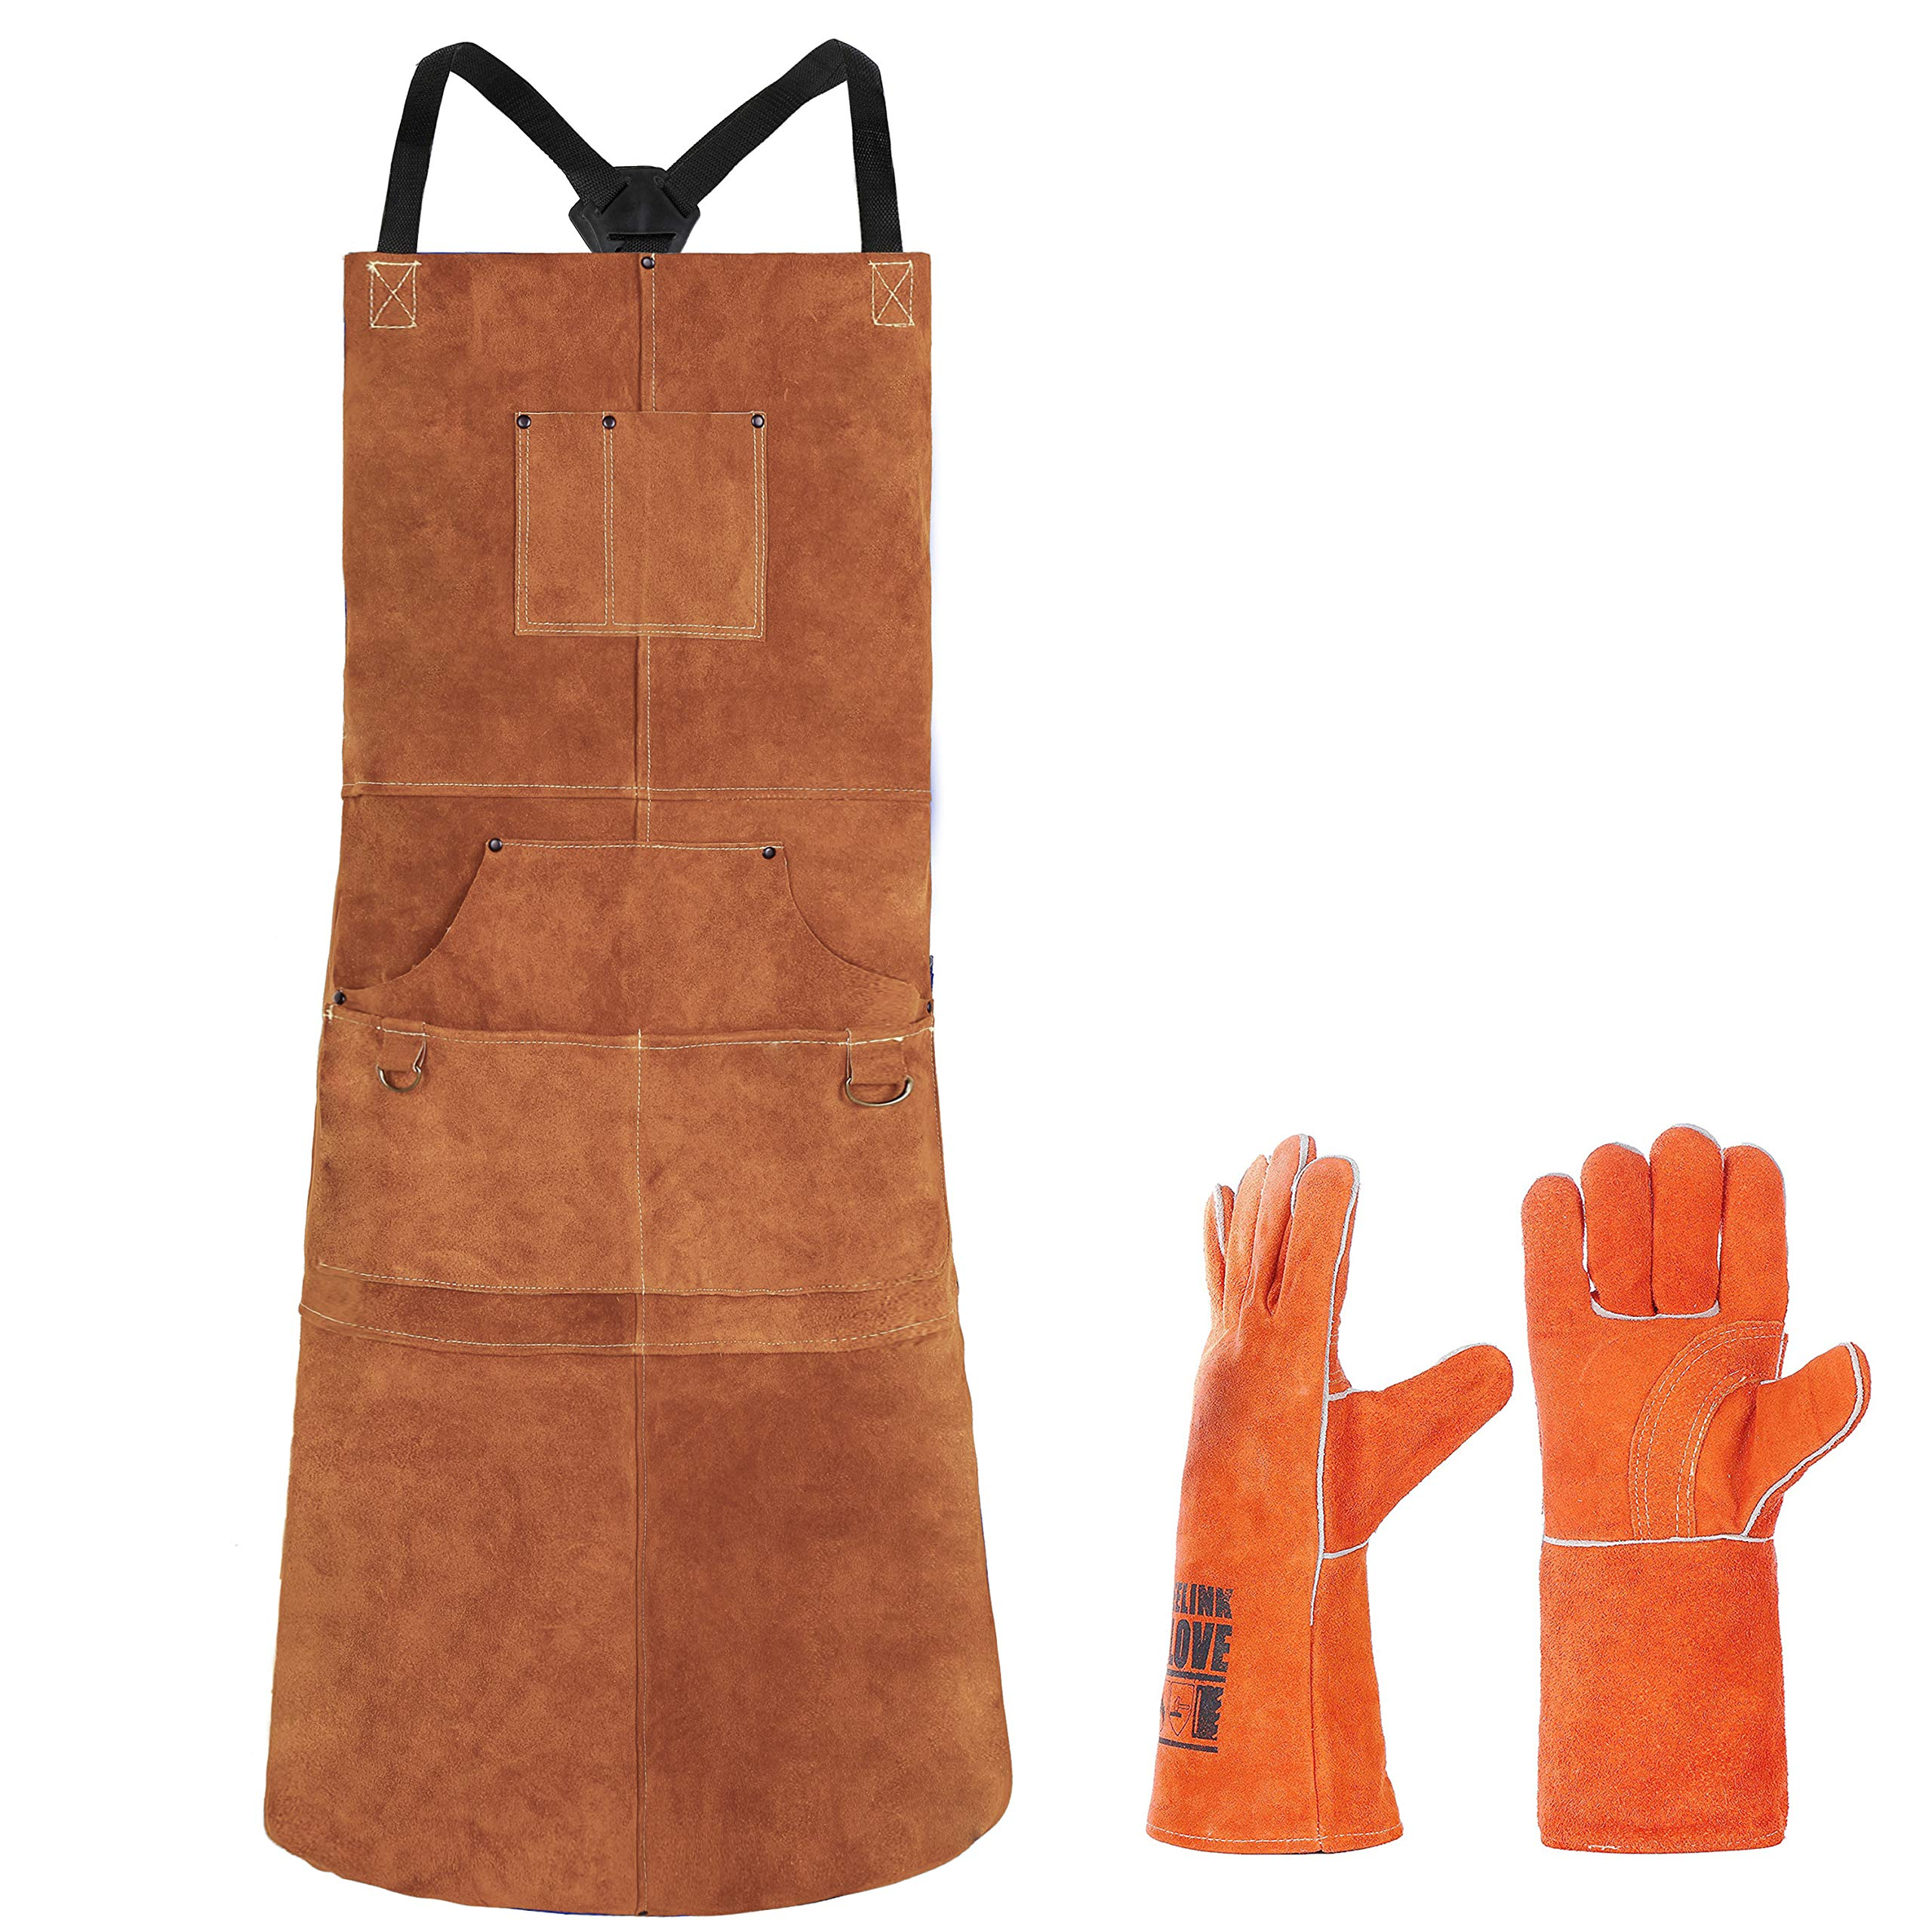 Leather Welding Apron 6 Pockets with Gloves - Heat & Flame-Resistant Heavy Duty Work Aprons, 42'' Extra Large & Cross Back Long Strap, Adjustable M to XXXL for Men & Women (Brown - Gloves Edition)